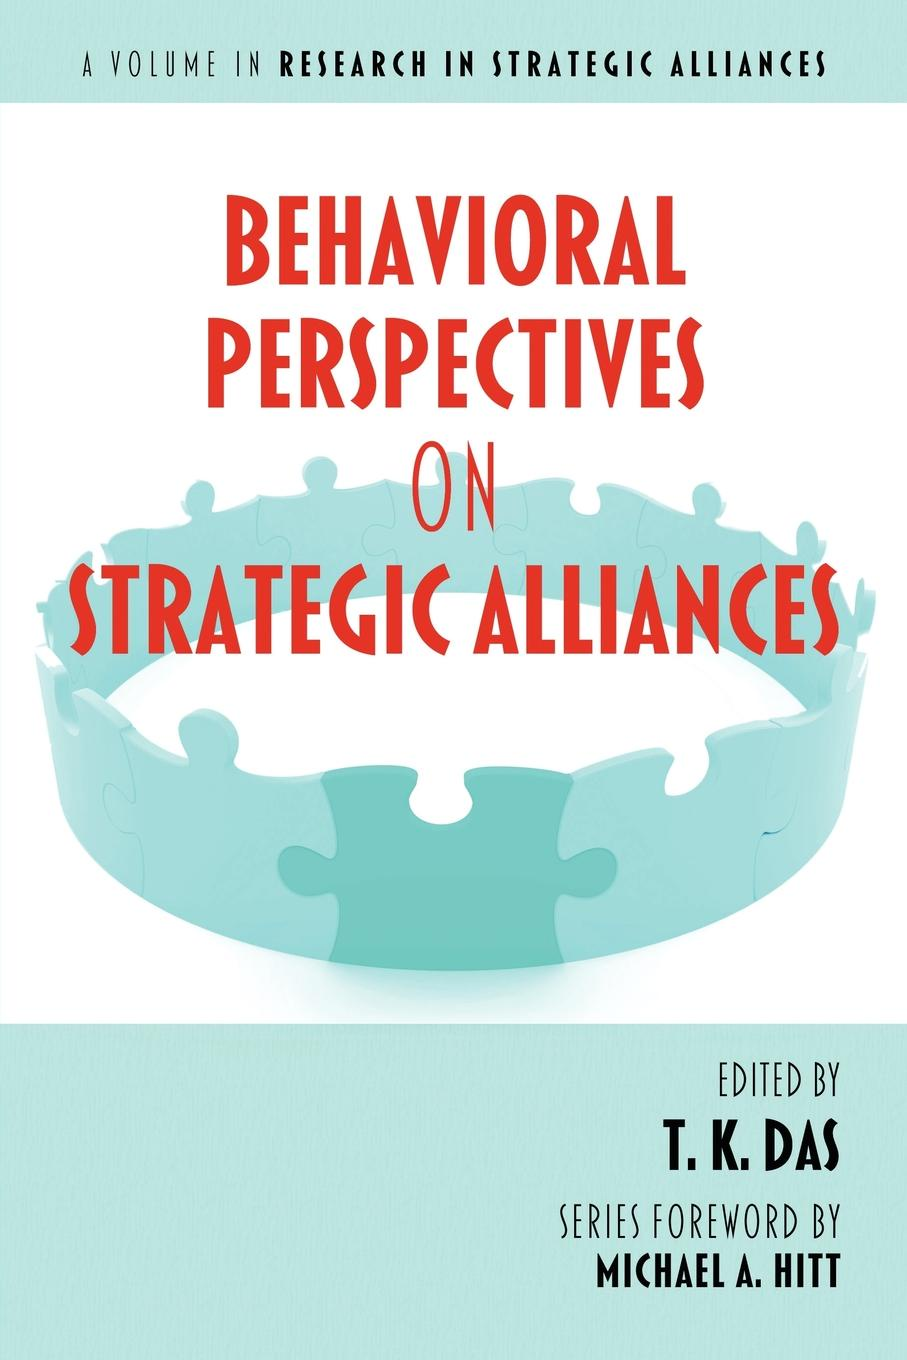 Behavioral Perspectives on Strategic Alliances parmod kumar literature and marginality emerging perspectives in dalit literature